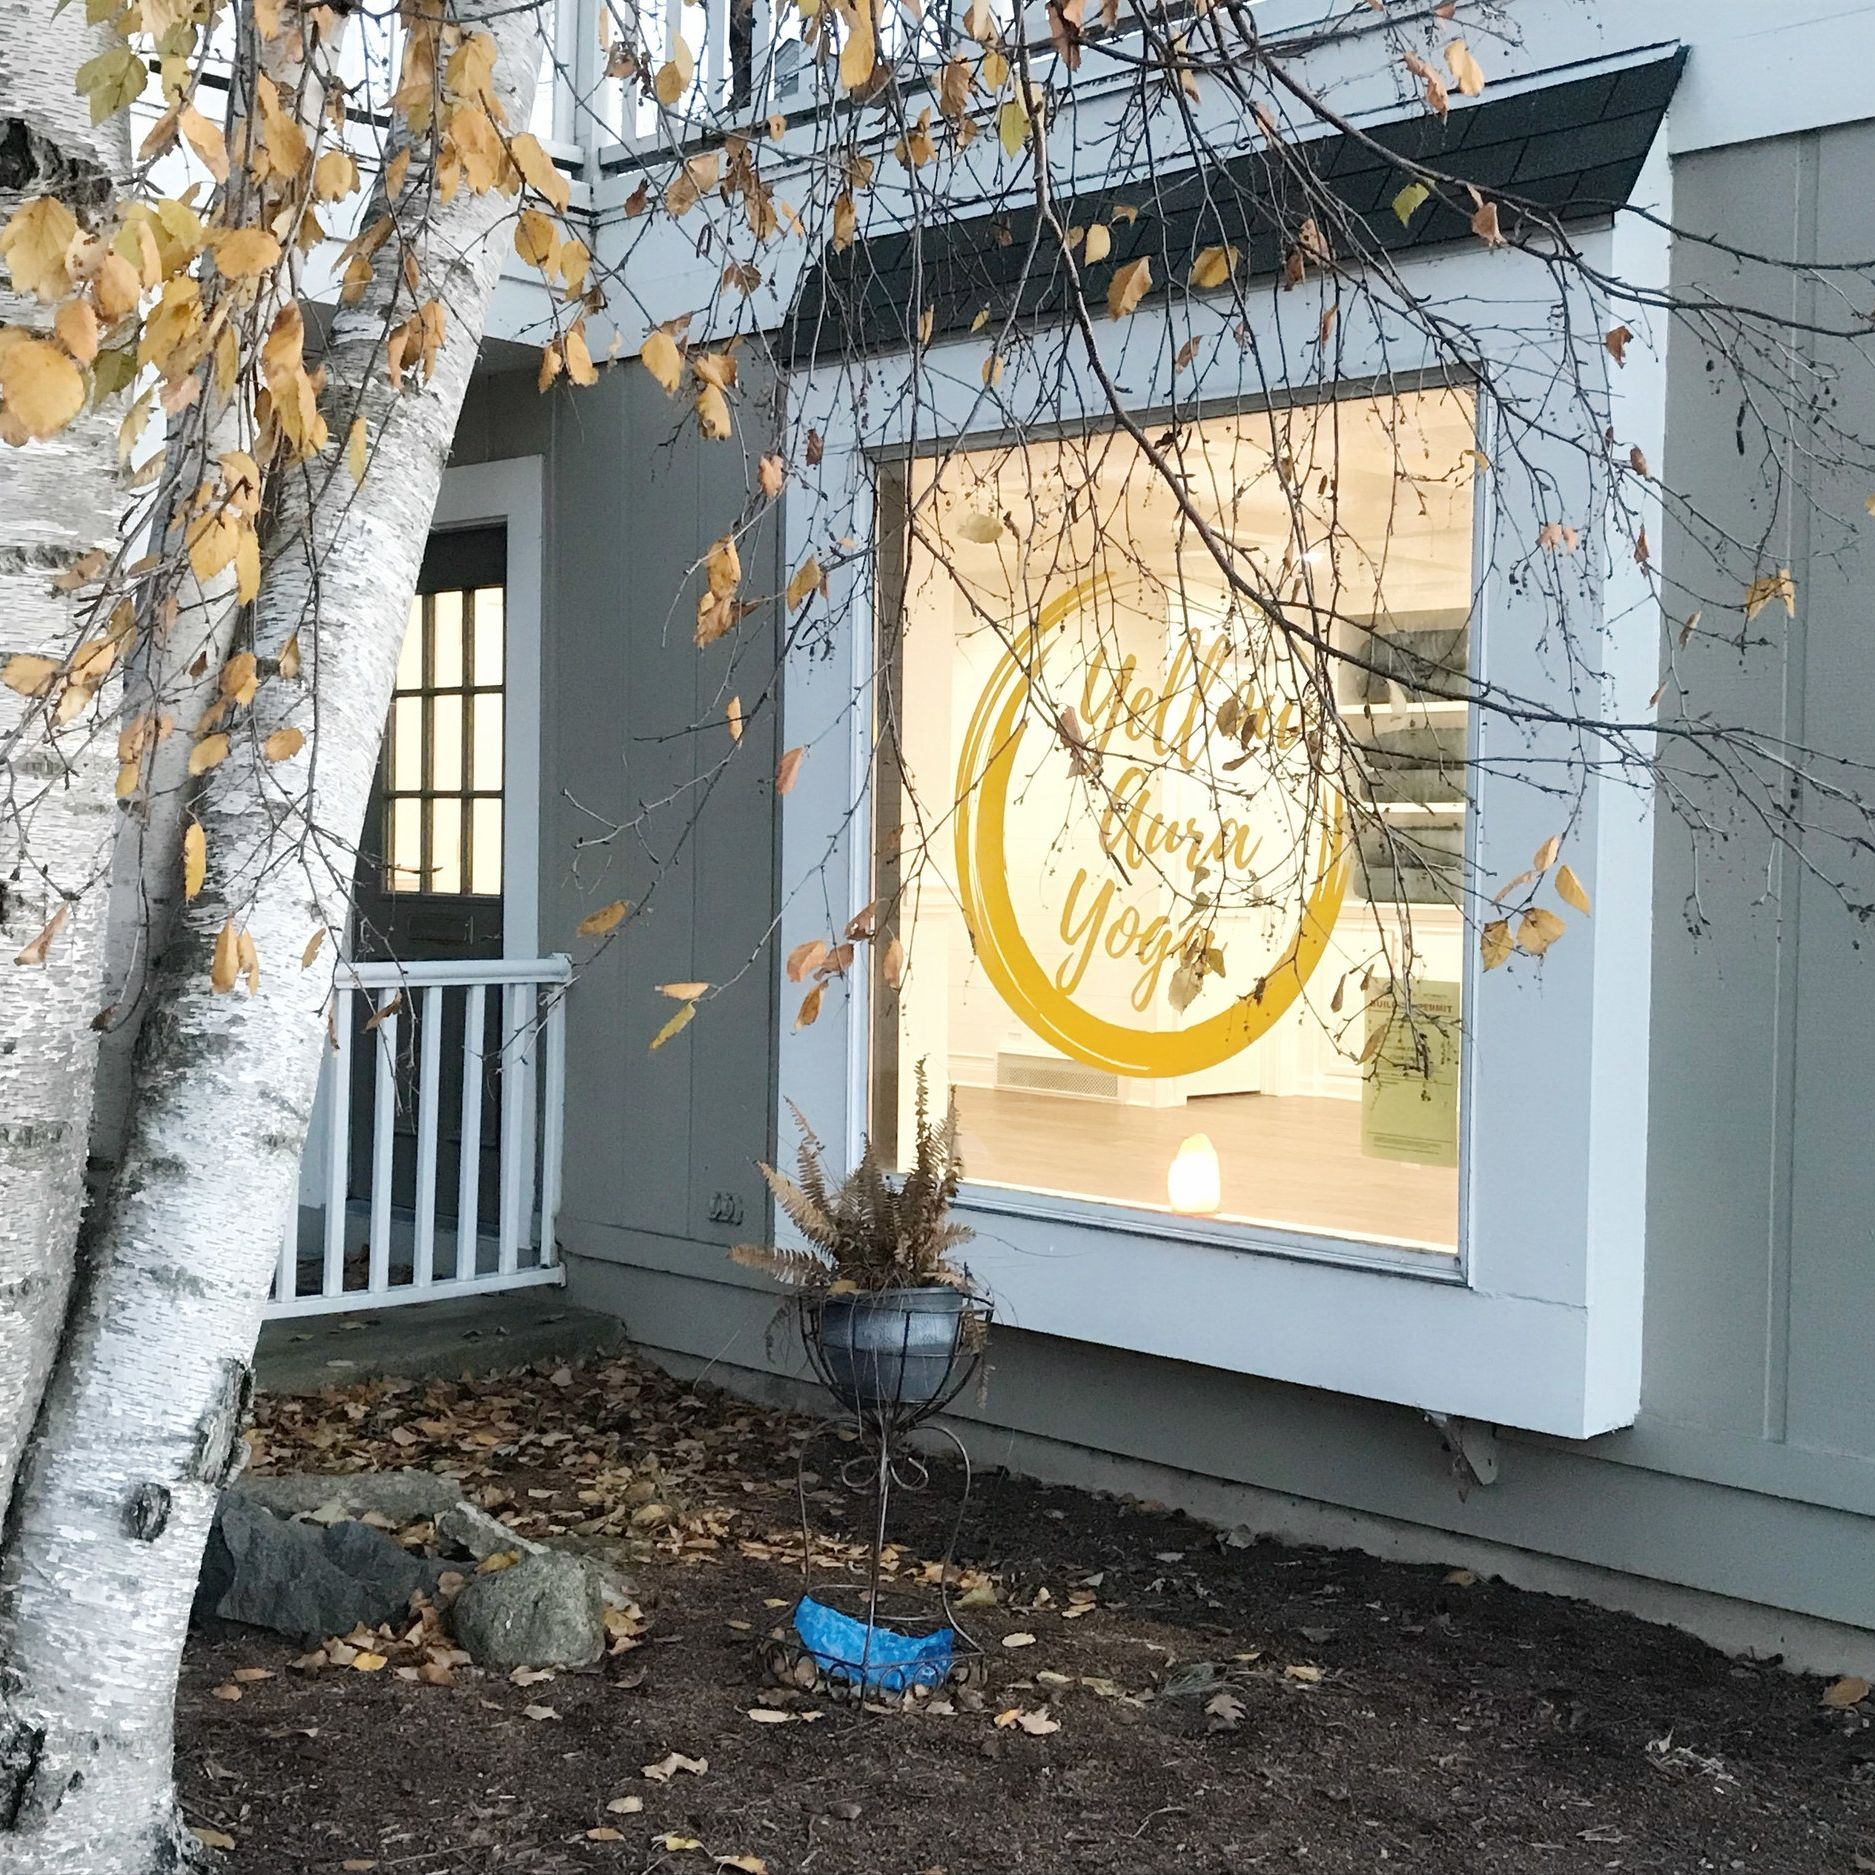 Yellow Aura Yoga in Geneva, IL brings boutique-style yoga classes to the heart of the downtown.